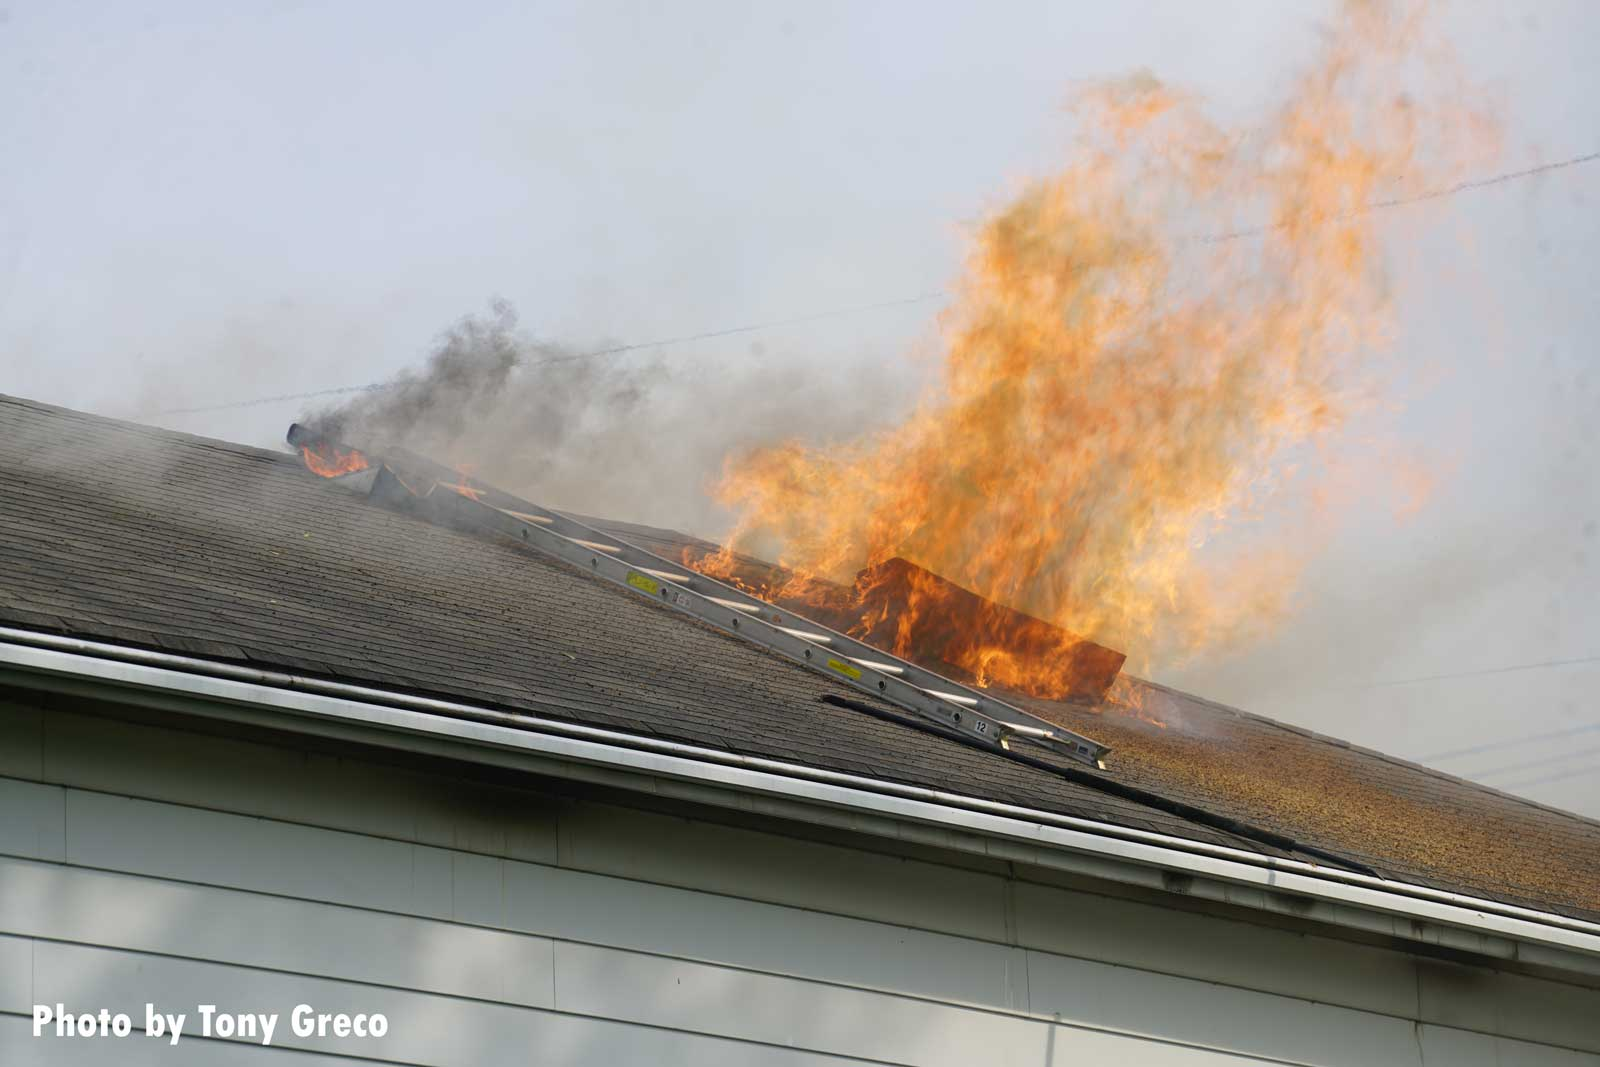 Flames vent from the roof during the Moonachie house fire